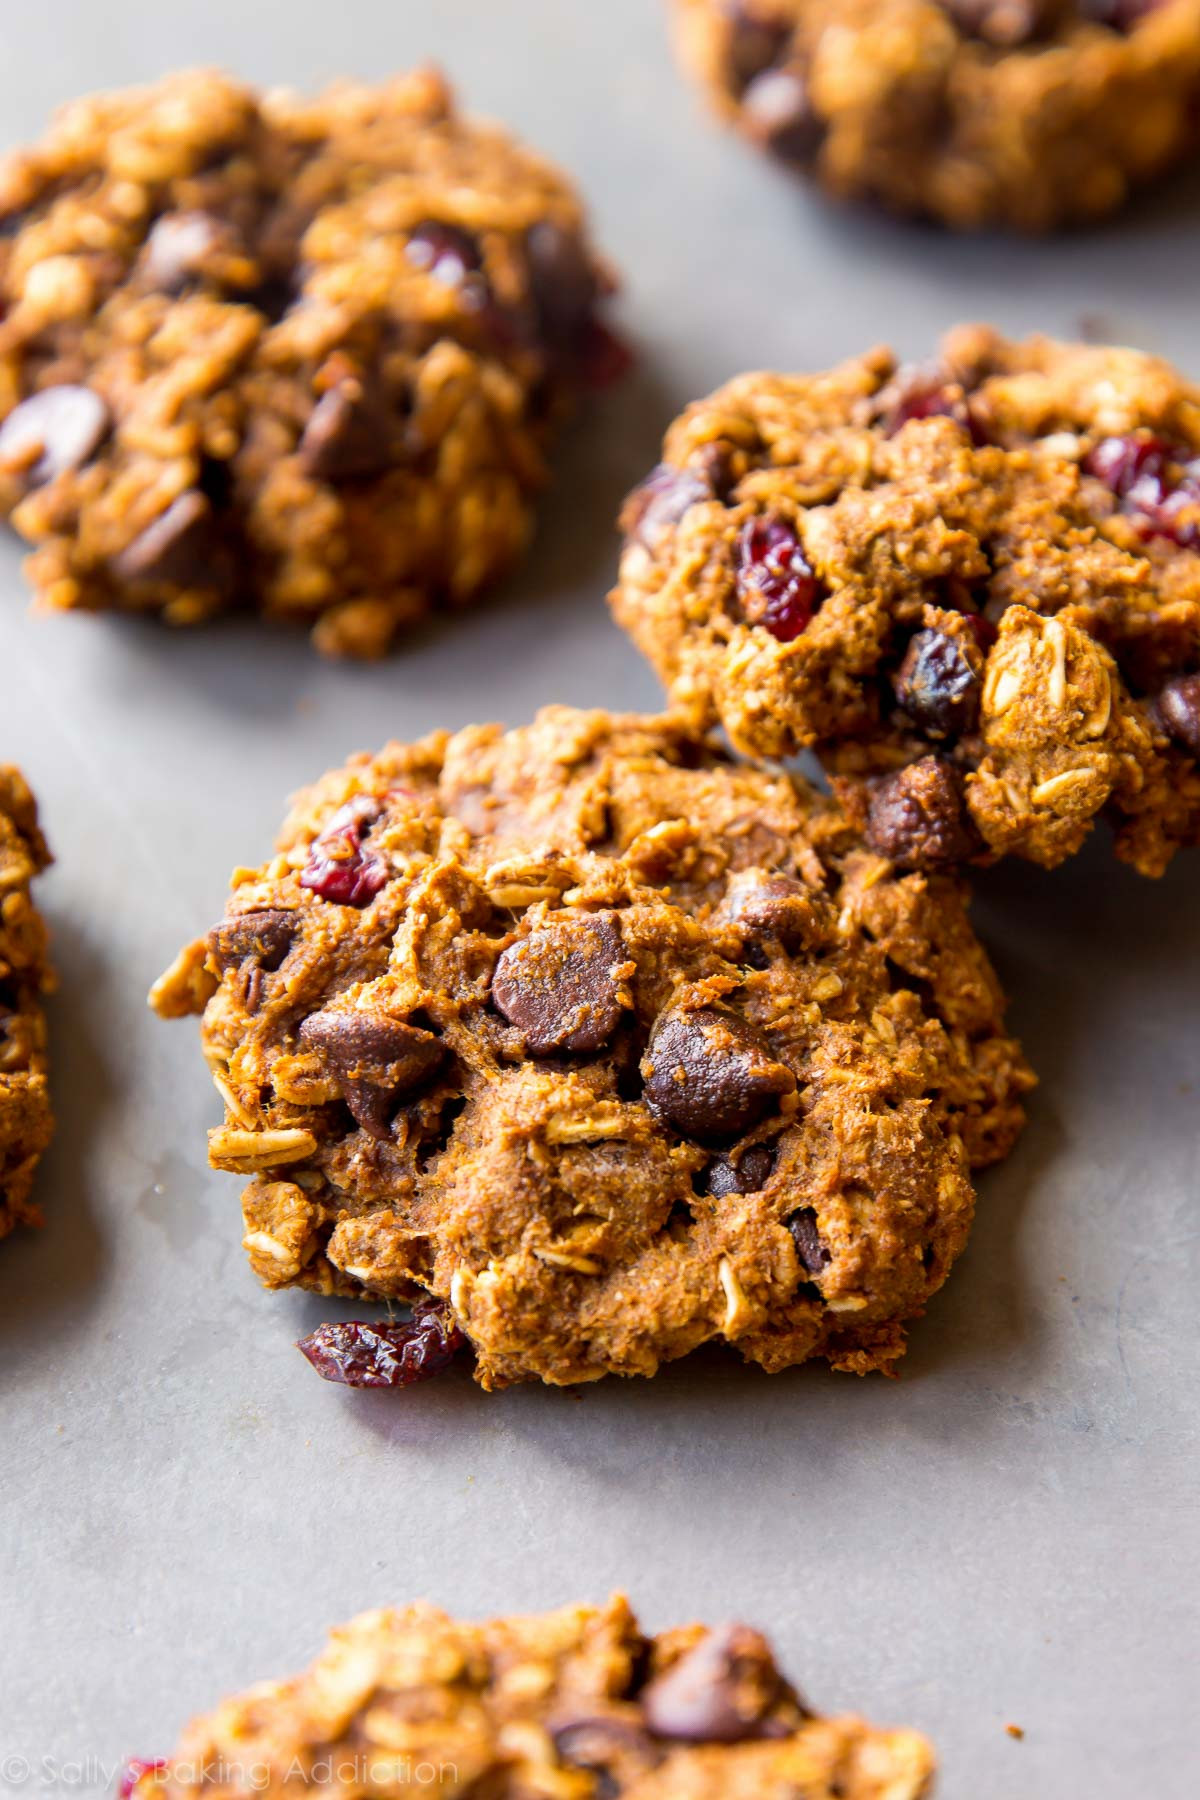 Oat Chocolate Chip Cookies Healthy  Healthy Pumpkin Chocolate Chip Oatmeal Cookies Sallys